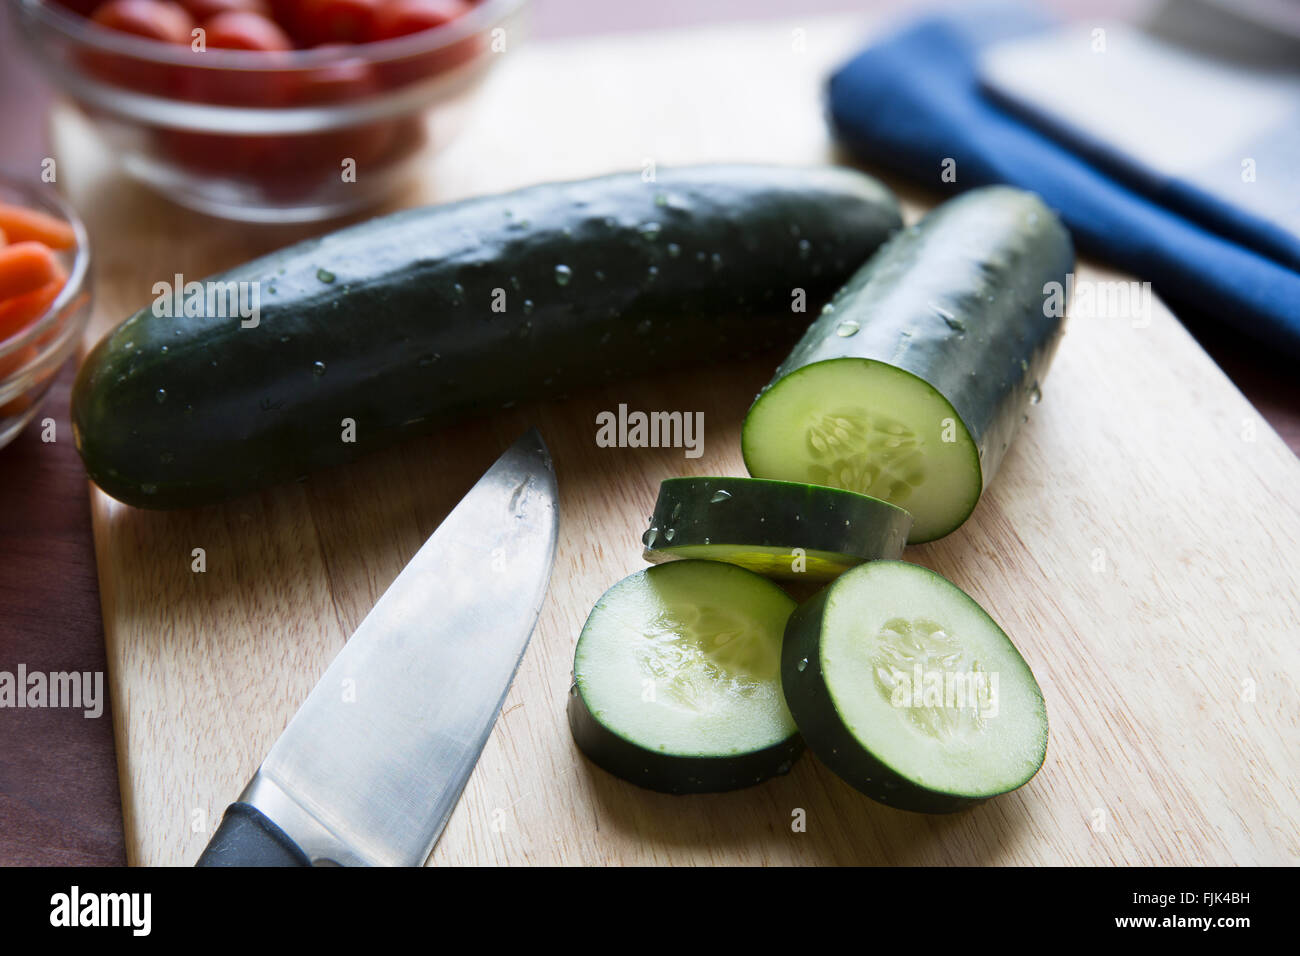 Cucumbers and knife on cutting board. - Stock Image